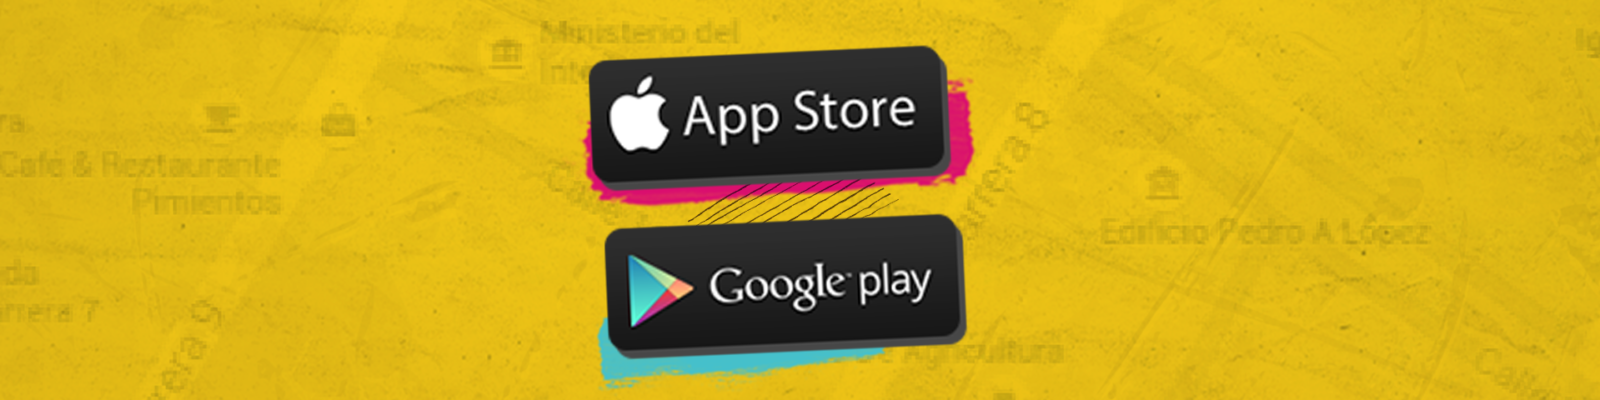 Descarga Tribuka en App Store y Google Play